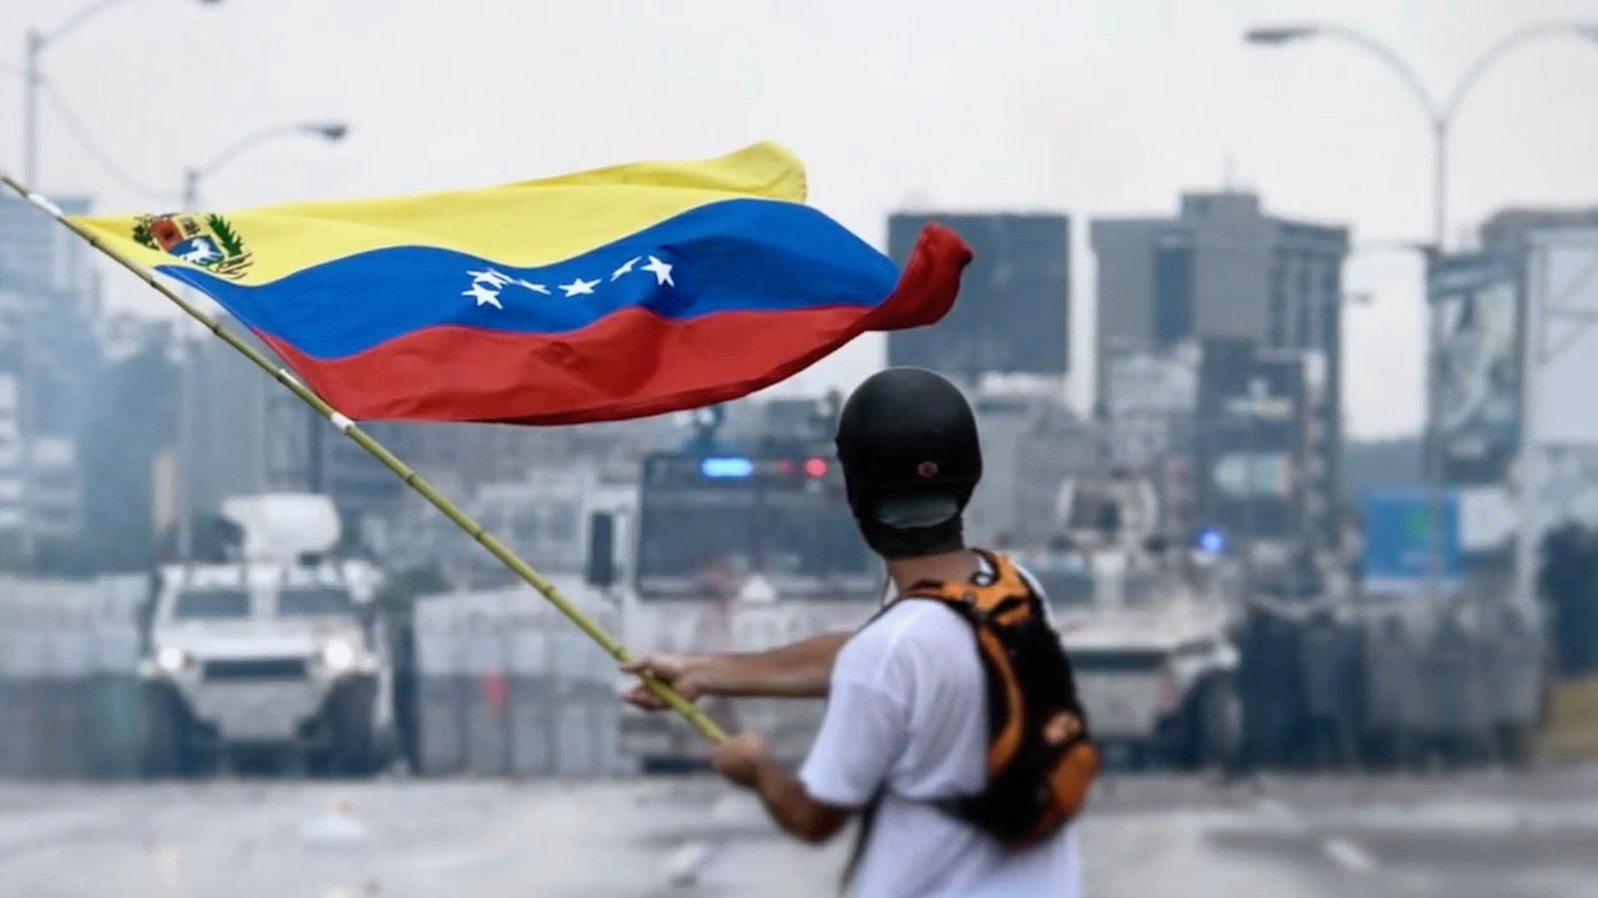 /venezuelan-petro-an-unfortunate-start-for-government-backed-cryptoccurrencies-26749daaa34d feature image